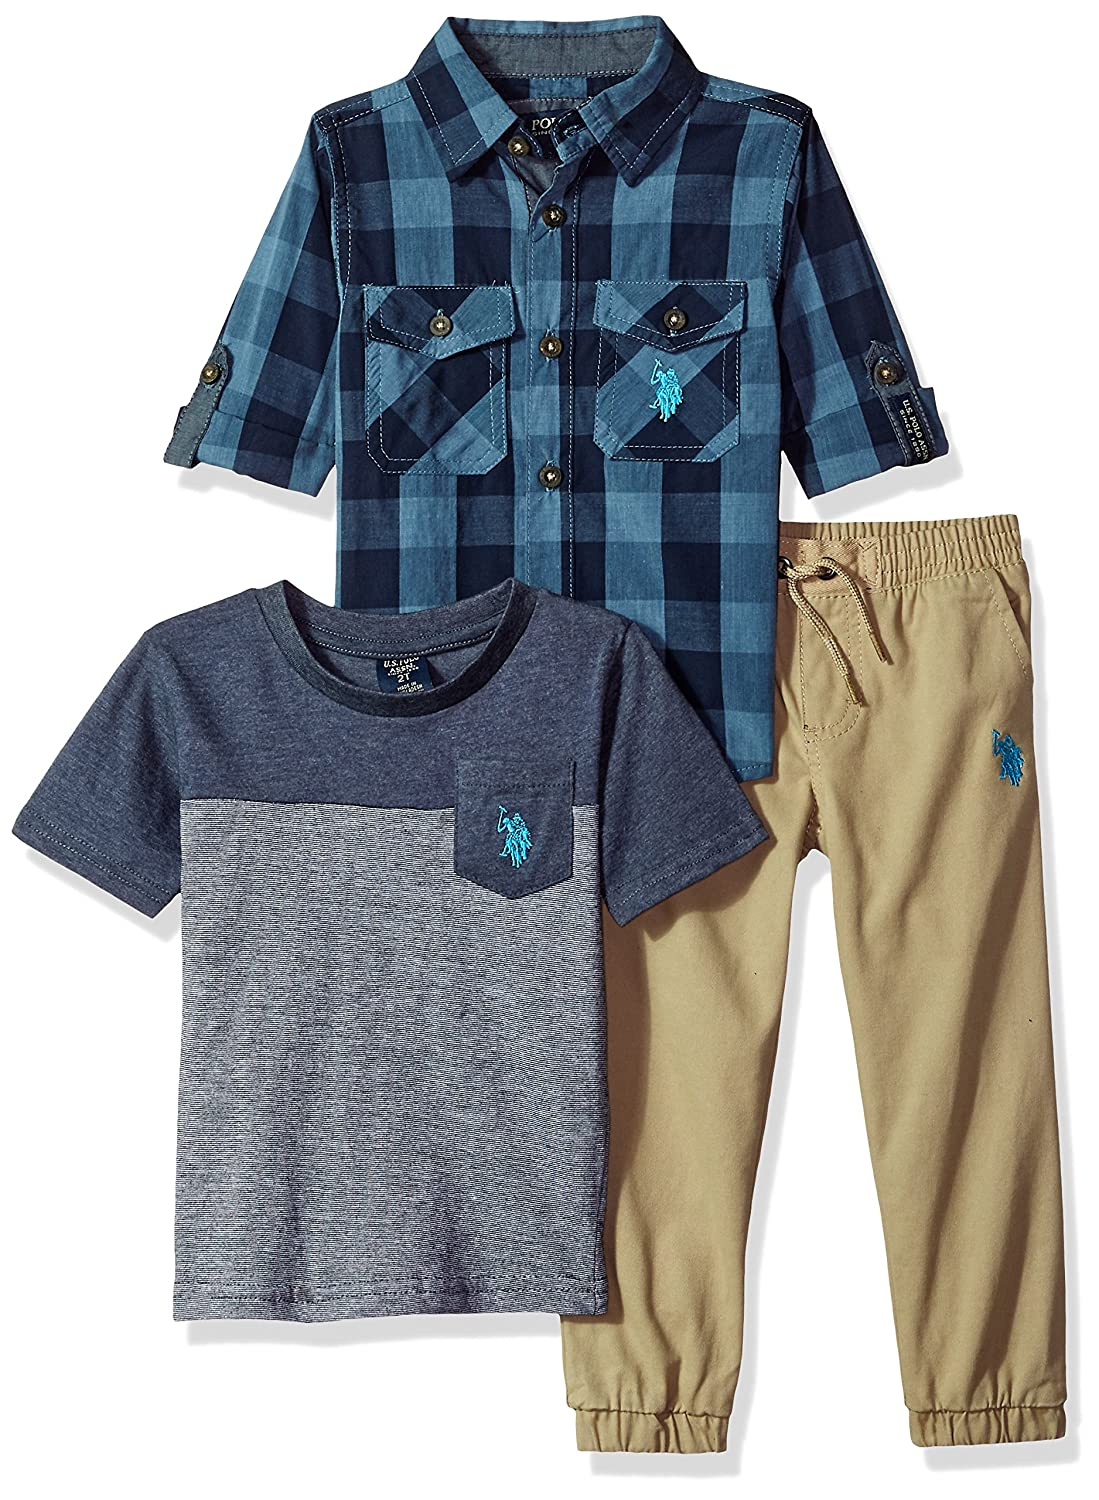 Polo Assn Boys Toddler Long Sleeve T-Shirt and Pant Set U.S